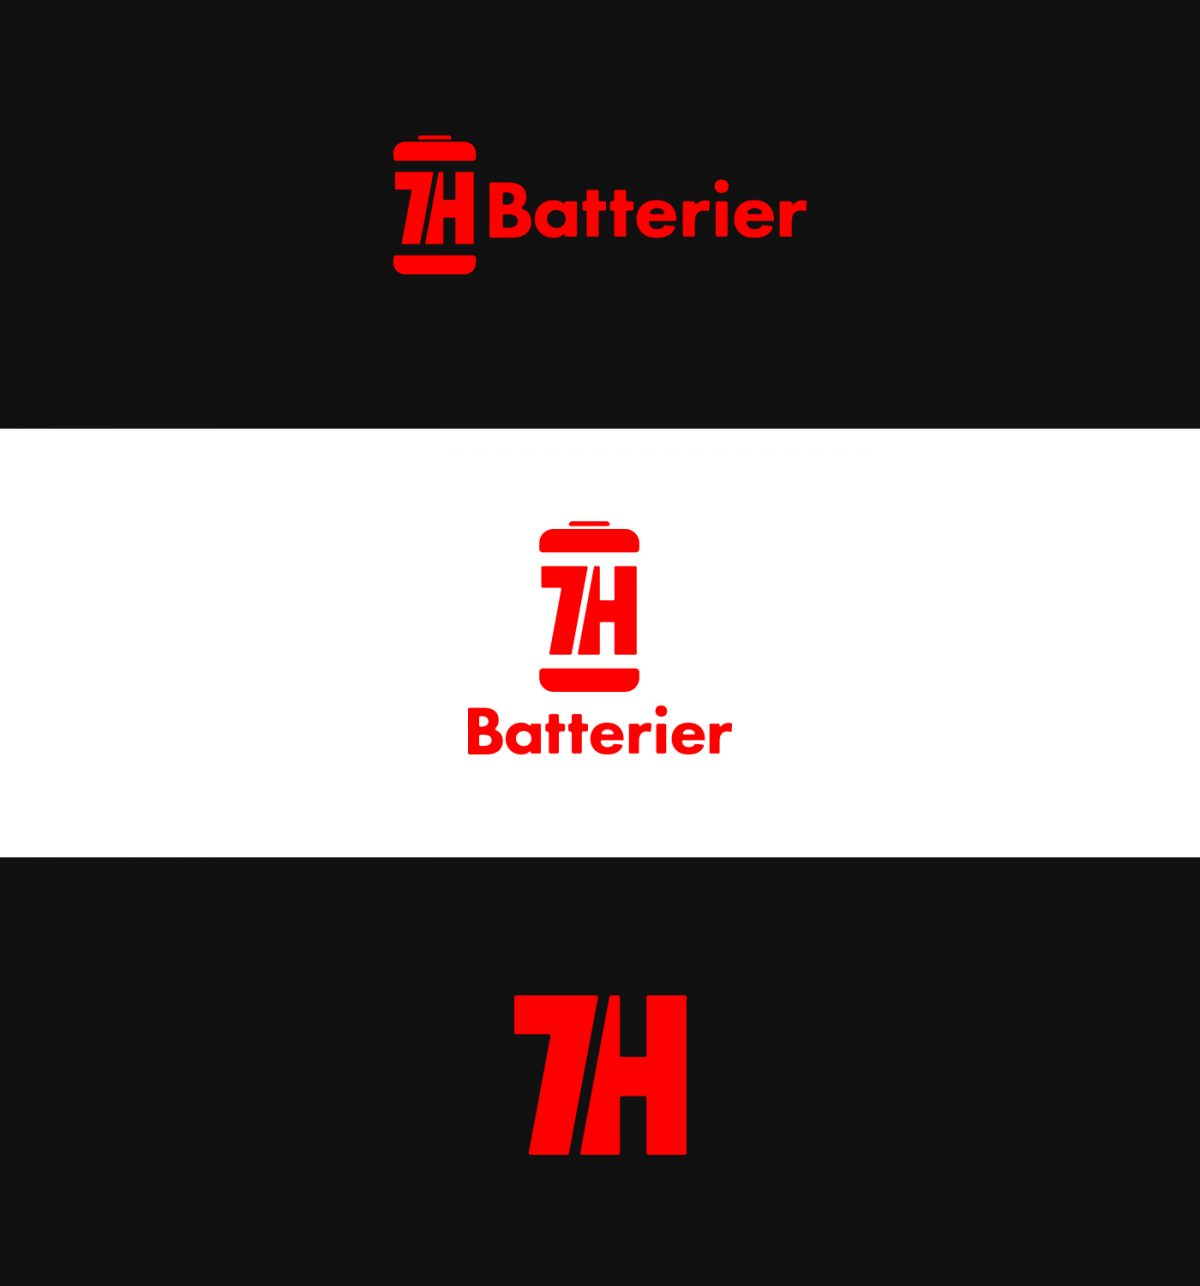 7H Batterier logo variations.